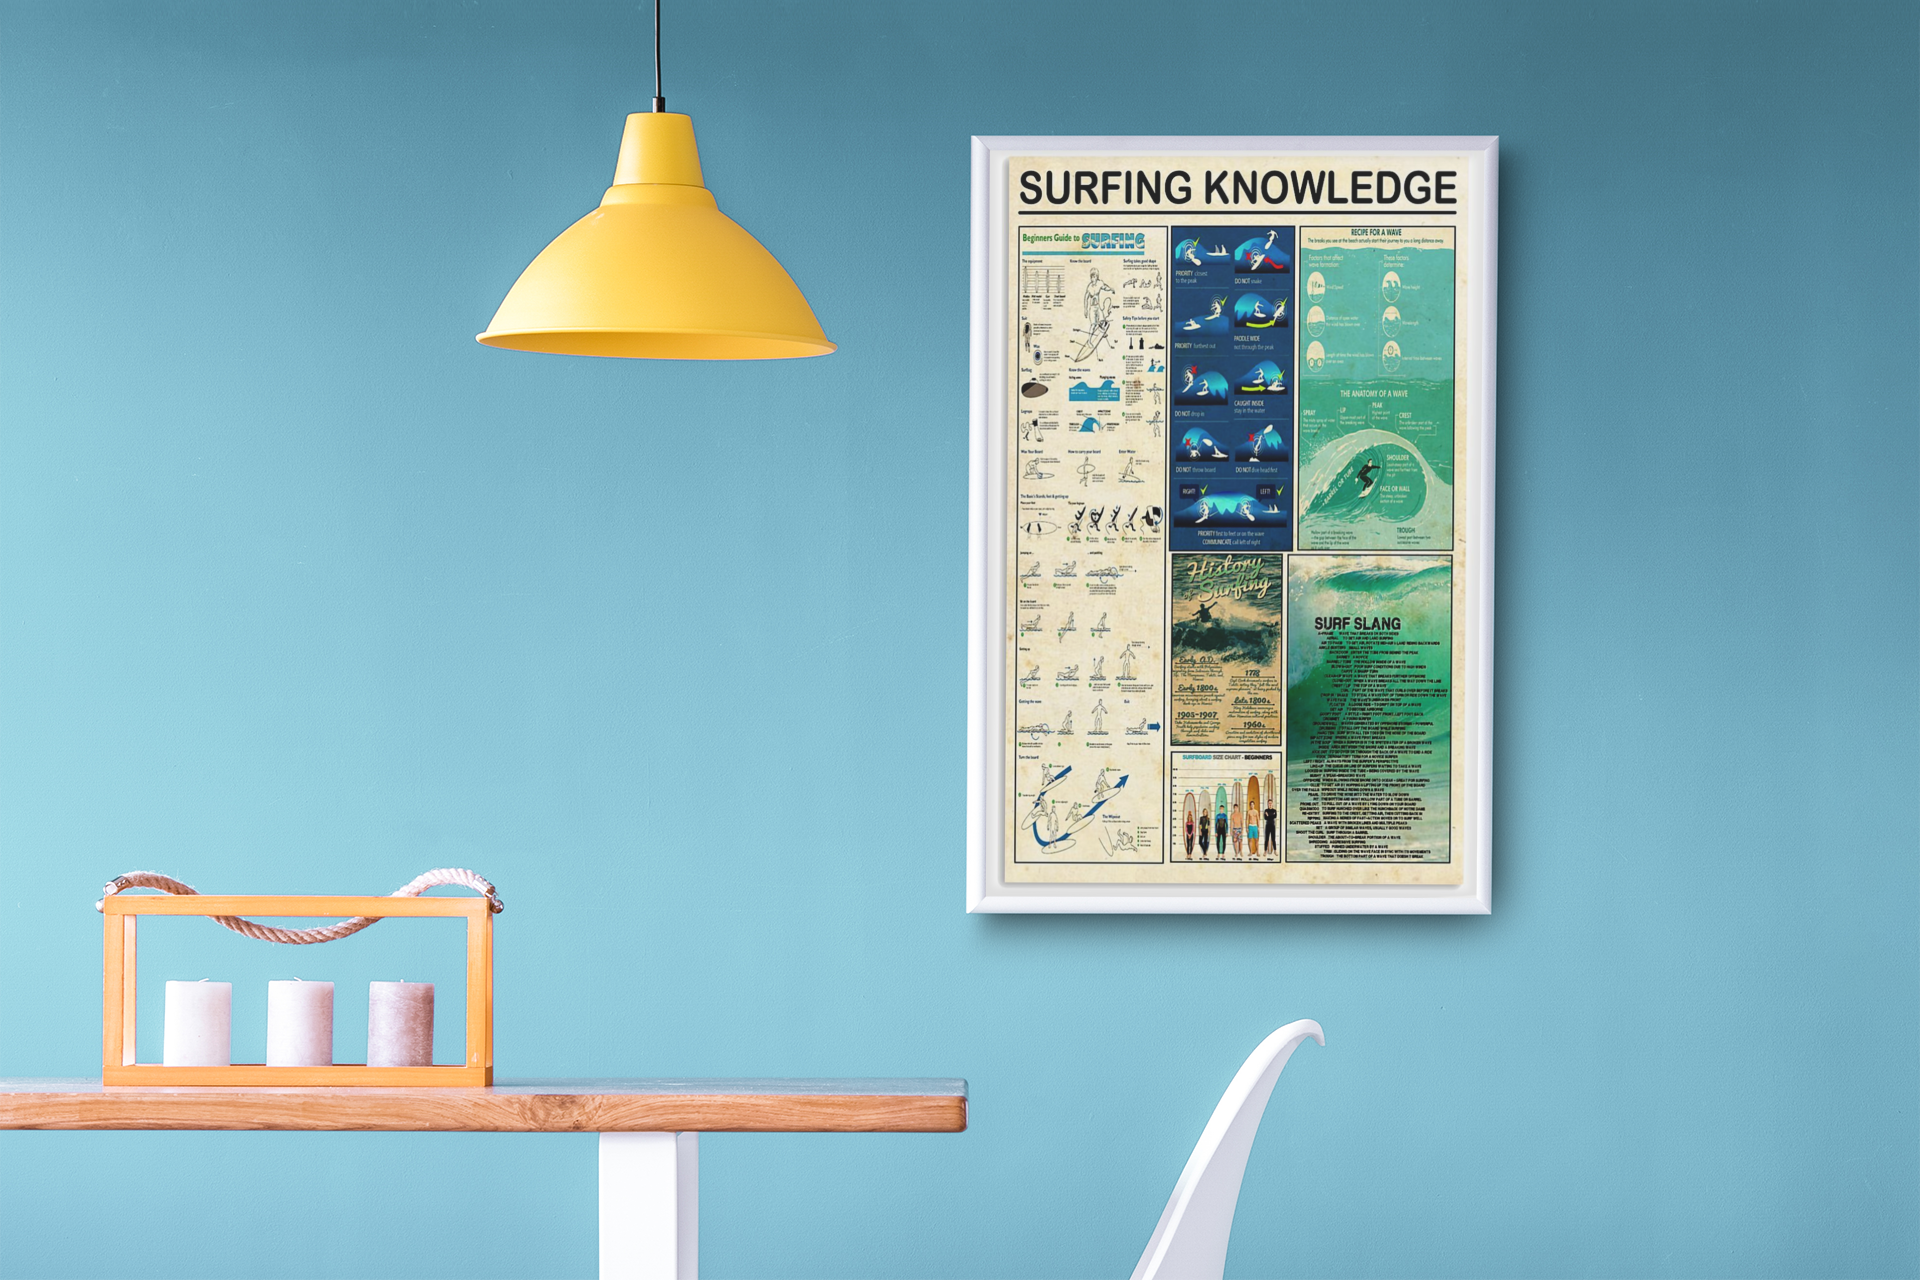 Surfing knowledge poster